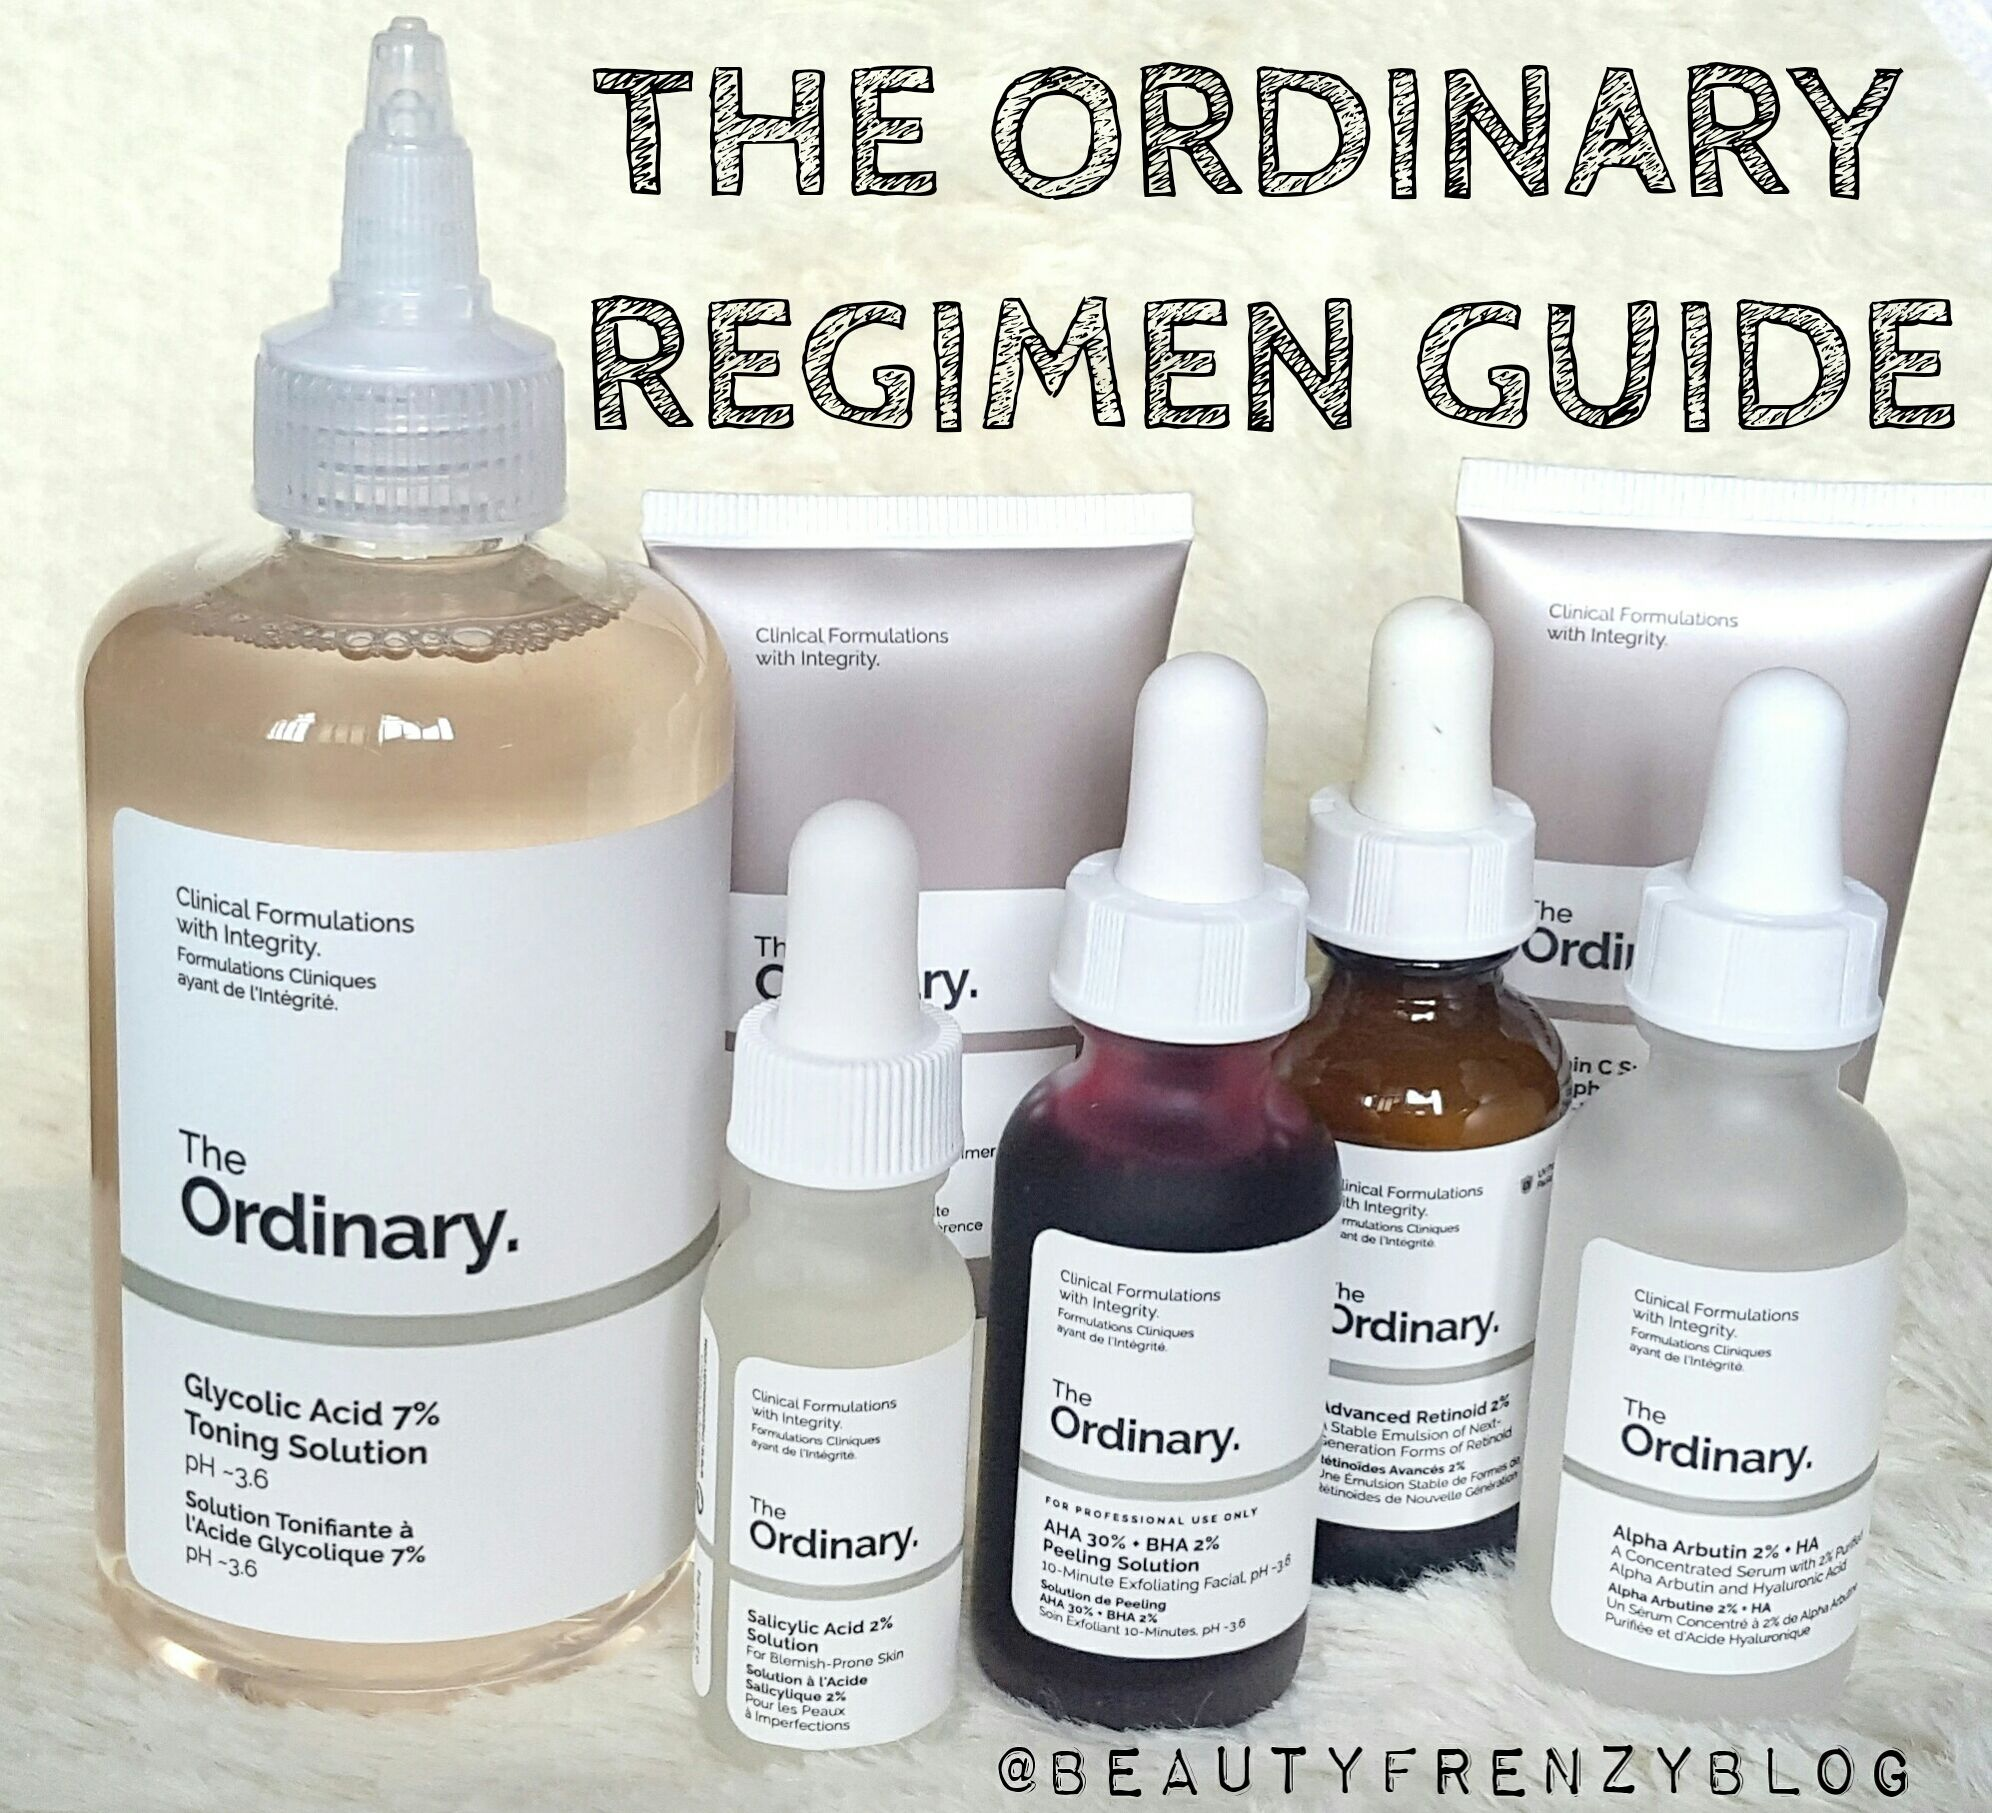 Bluehost Com The Ordinary Products The Ordinary Skincare Anti Aging Skin Products